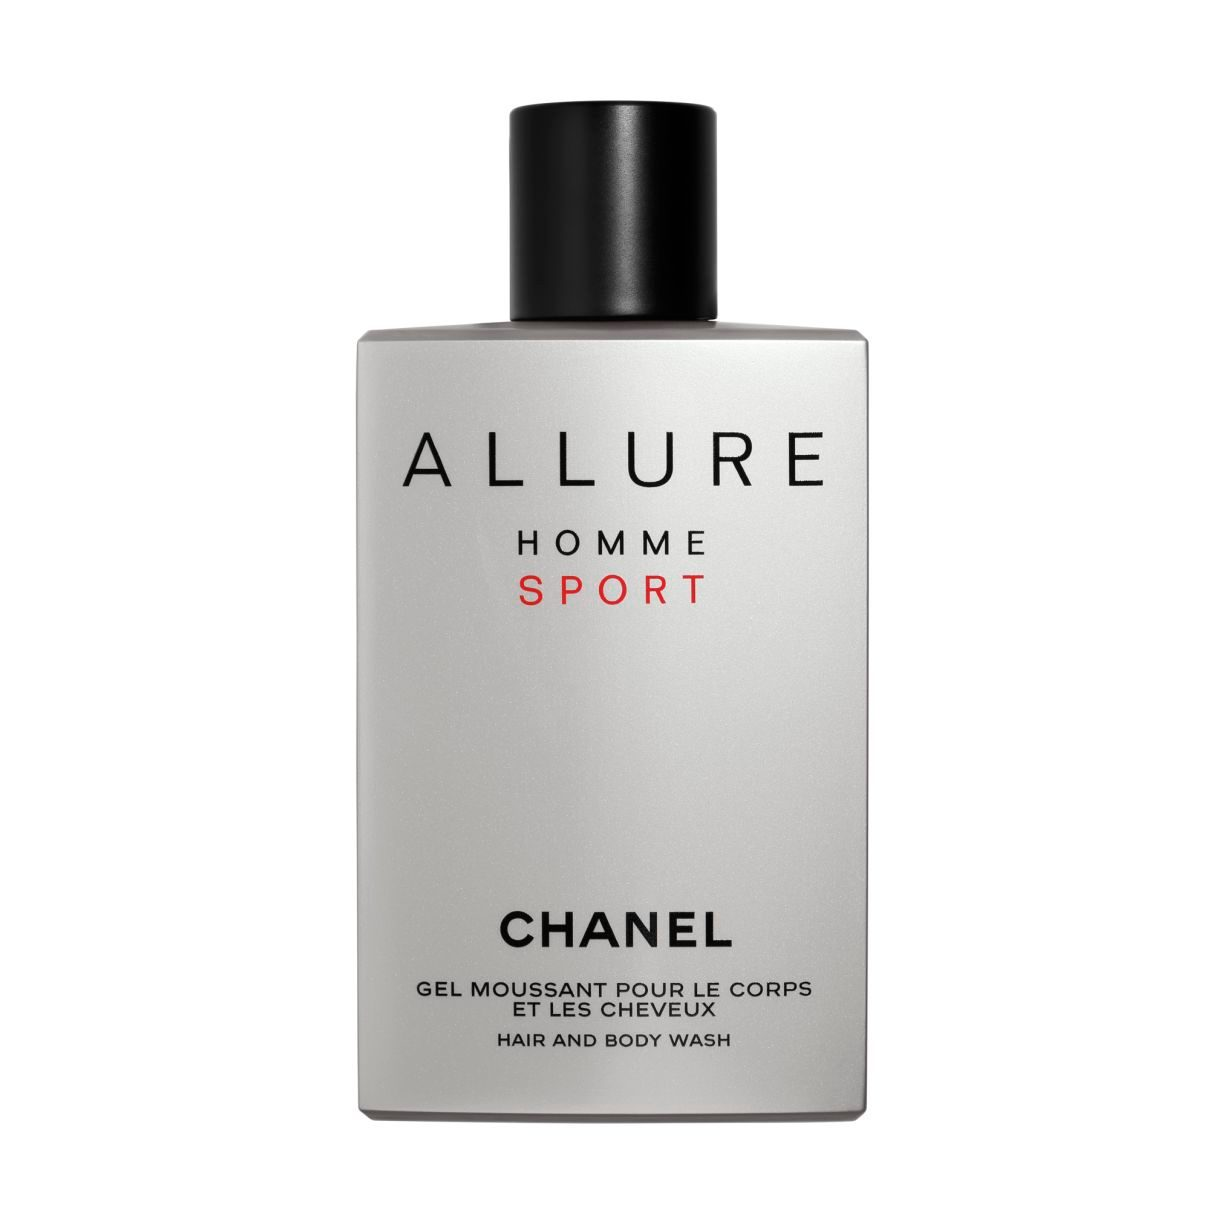 ALLURE HOMME SPORT SHOWER GEL 200ml